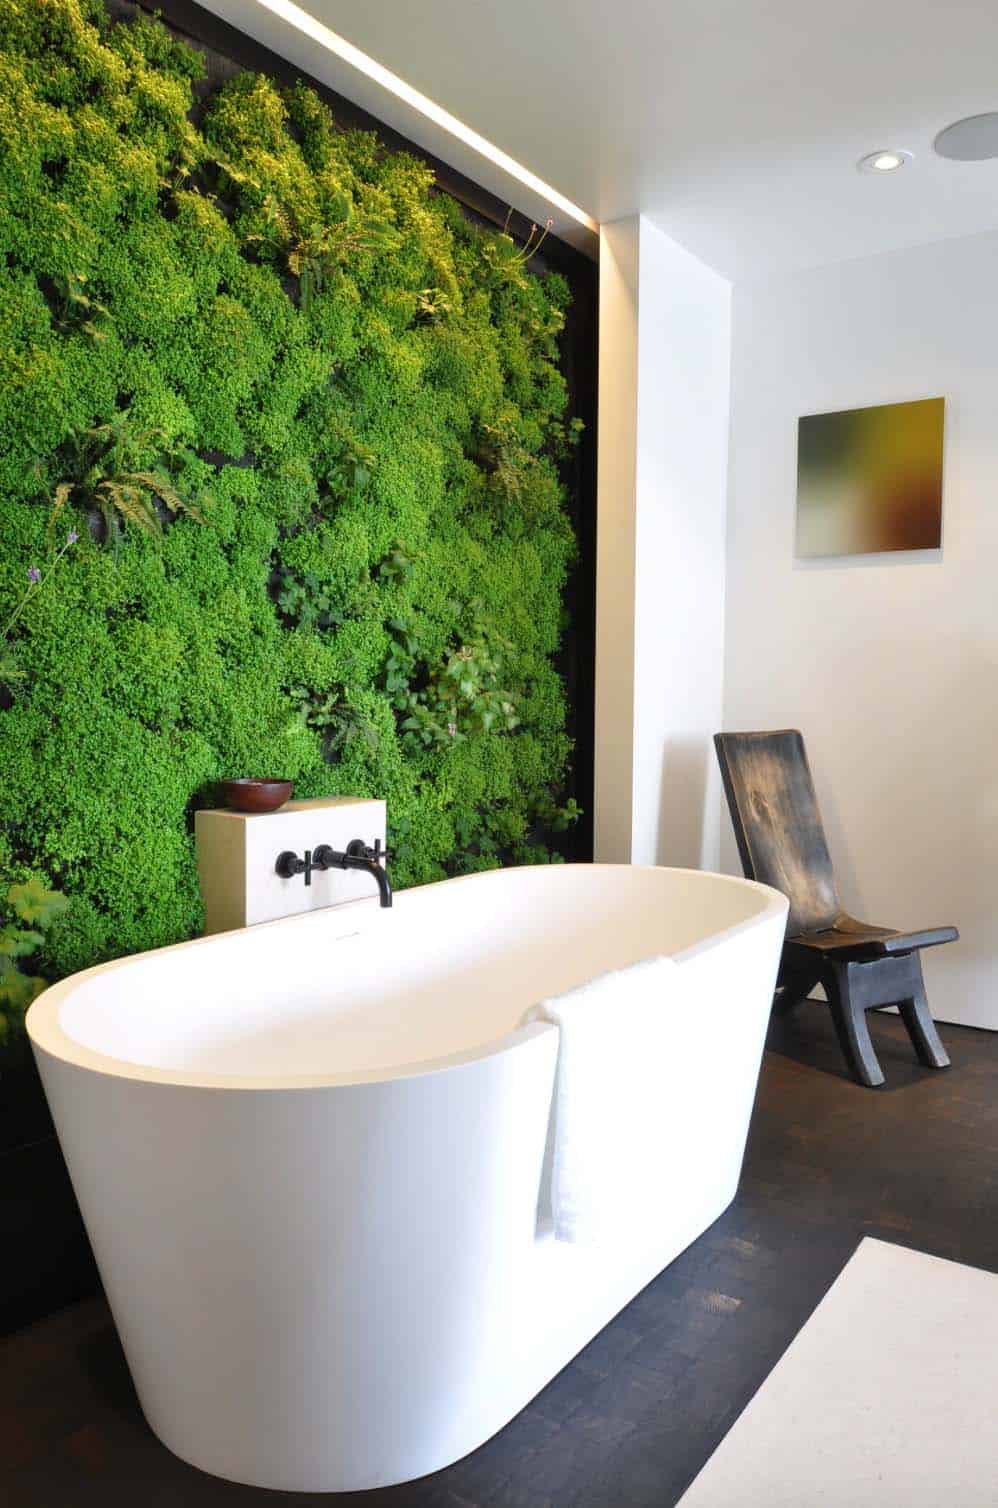 Inspiring Bathrooms Integrating Lush Gardens-05-1 Kindesign